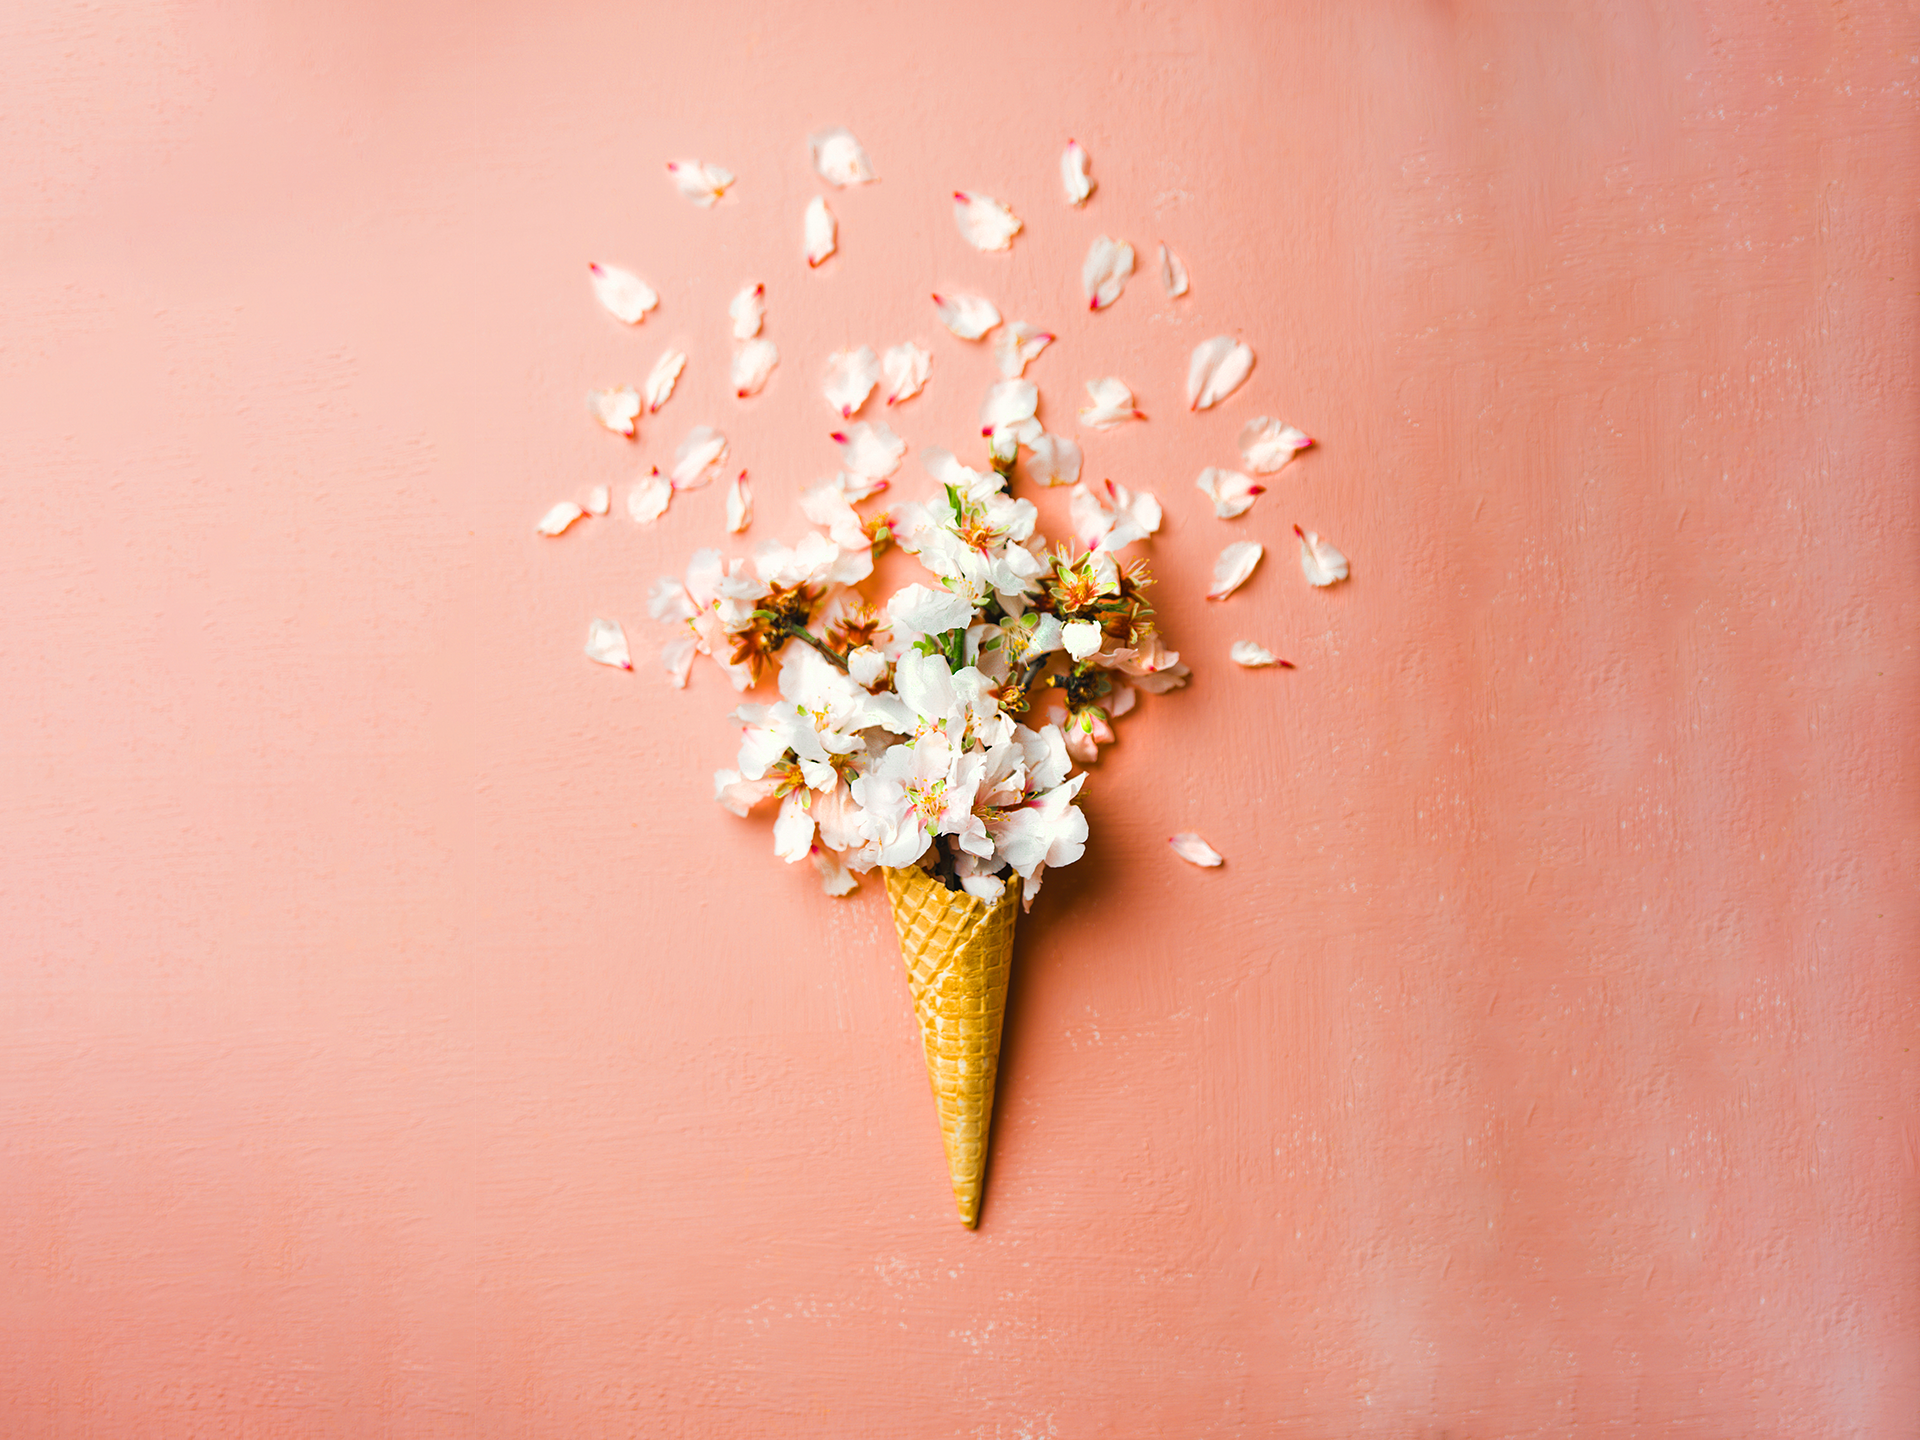 A peach background with white flowers in a scone.